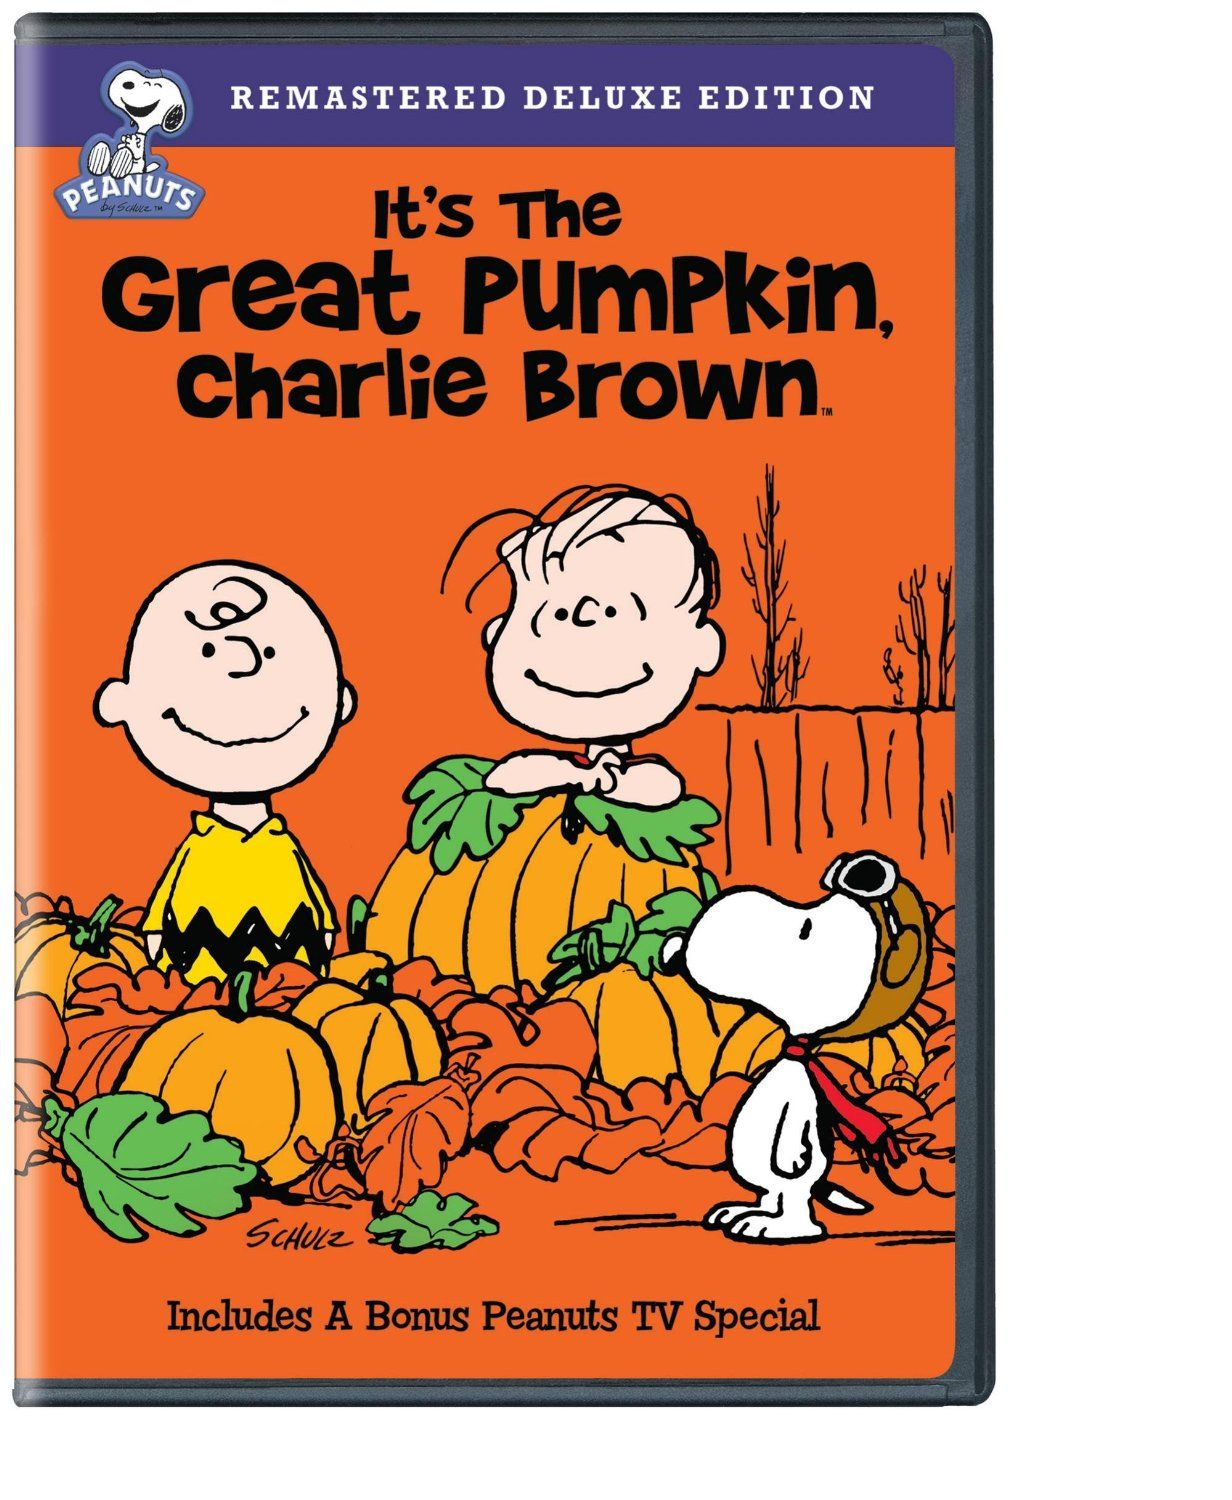 It's the Great Pumpkin, Charlie Brown DVD or Blu-Ray Only $9.96! http://becomeacouponqueen.com